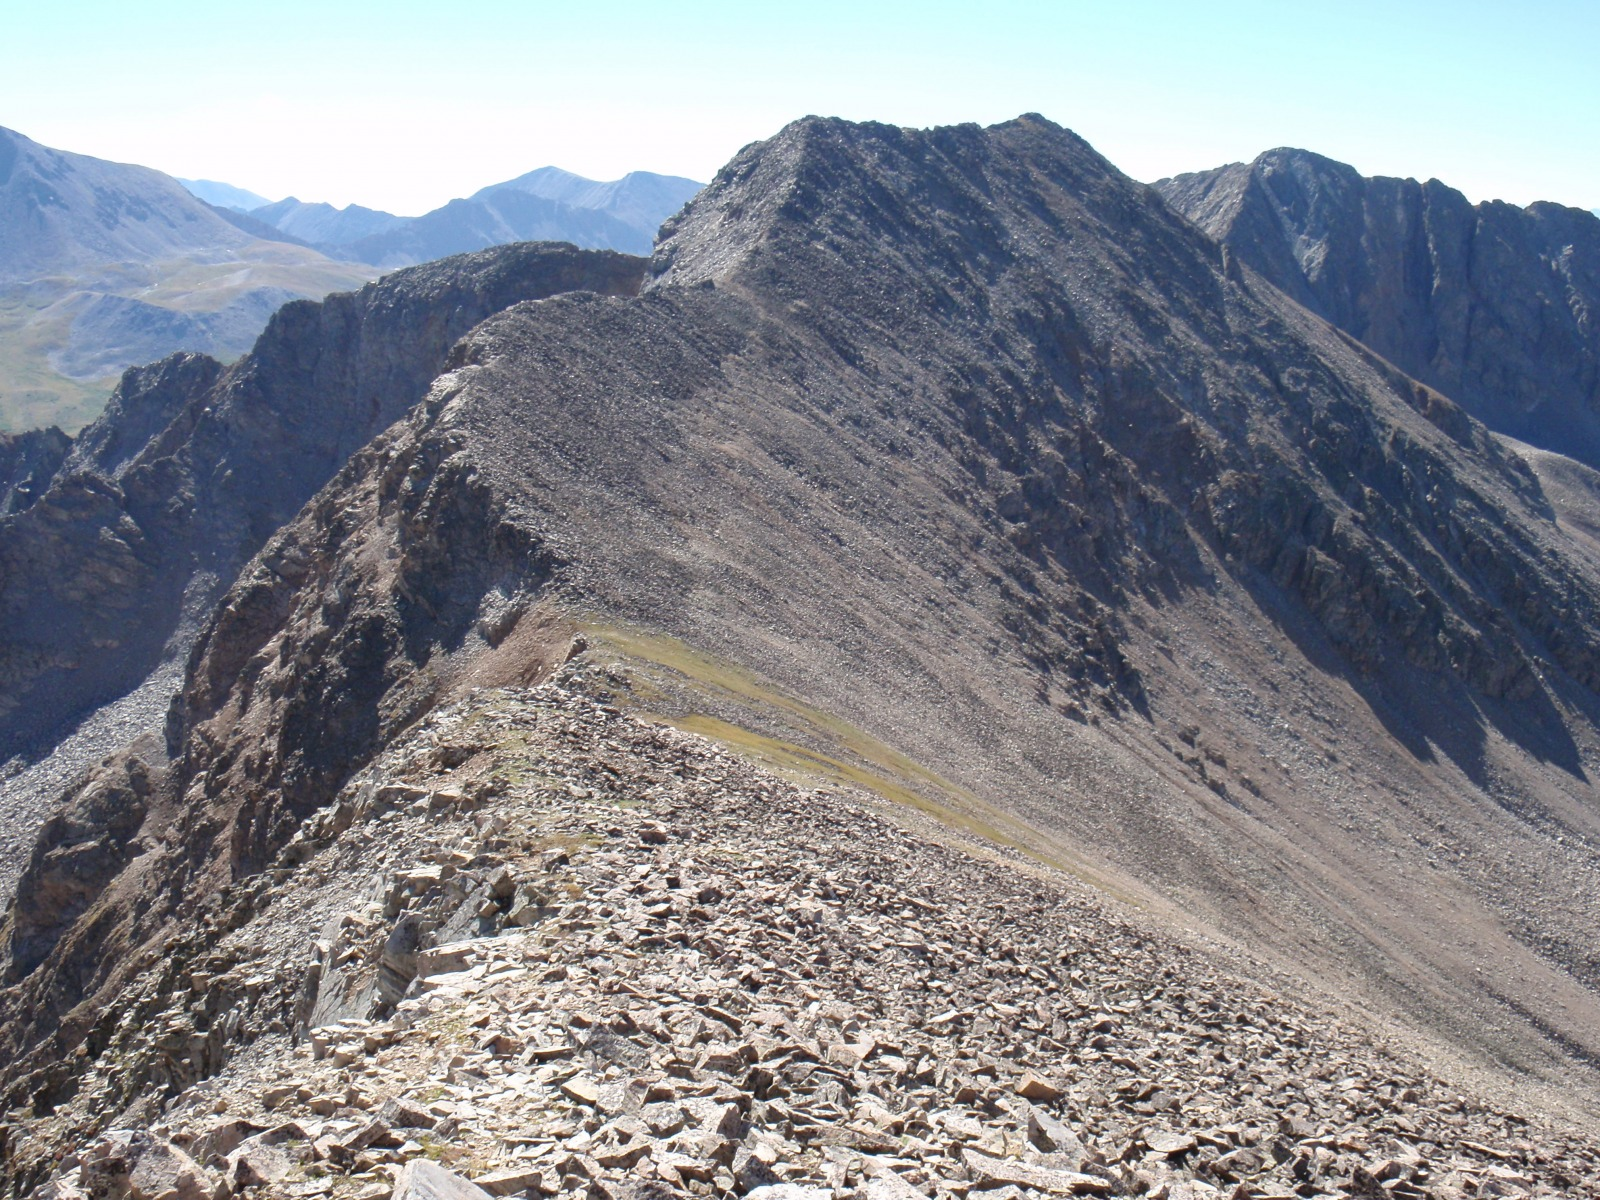 Unnamed 13,472 seen from the south ridge of 14er Huron Peak